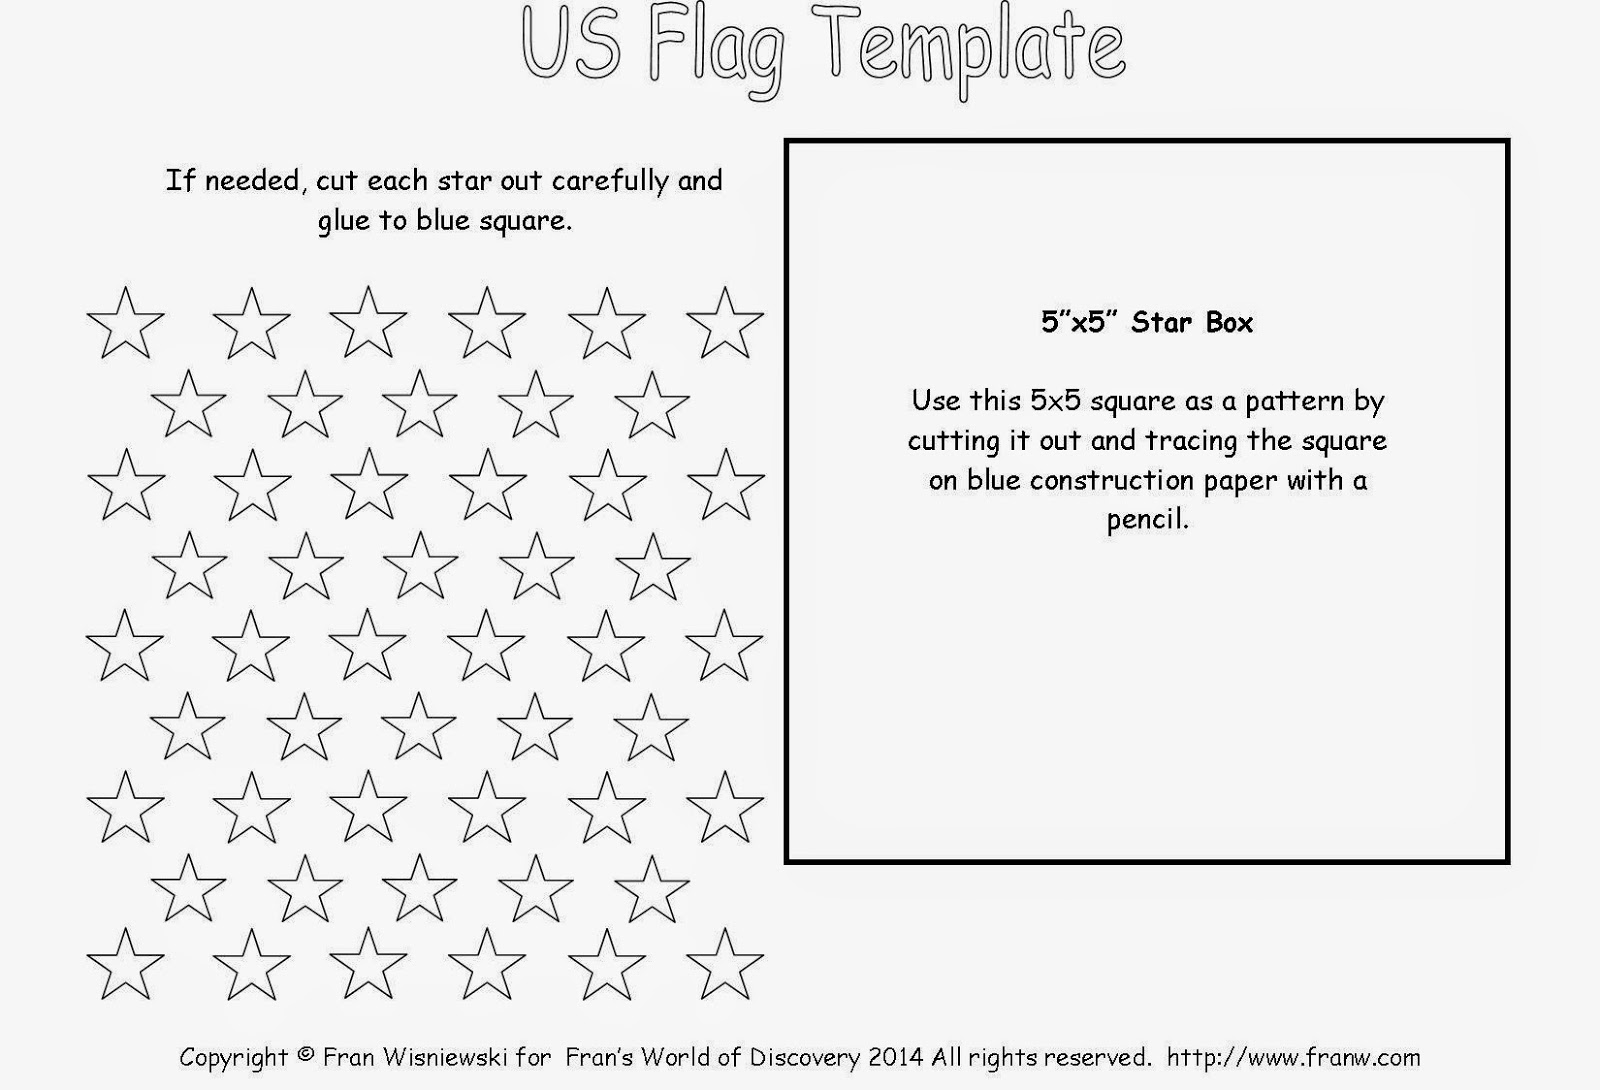 50 stars flag template for toothpicks